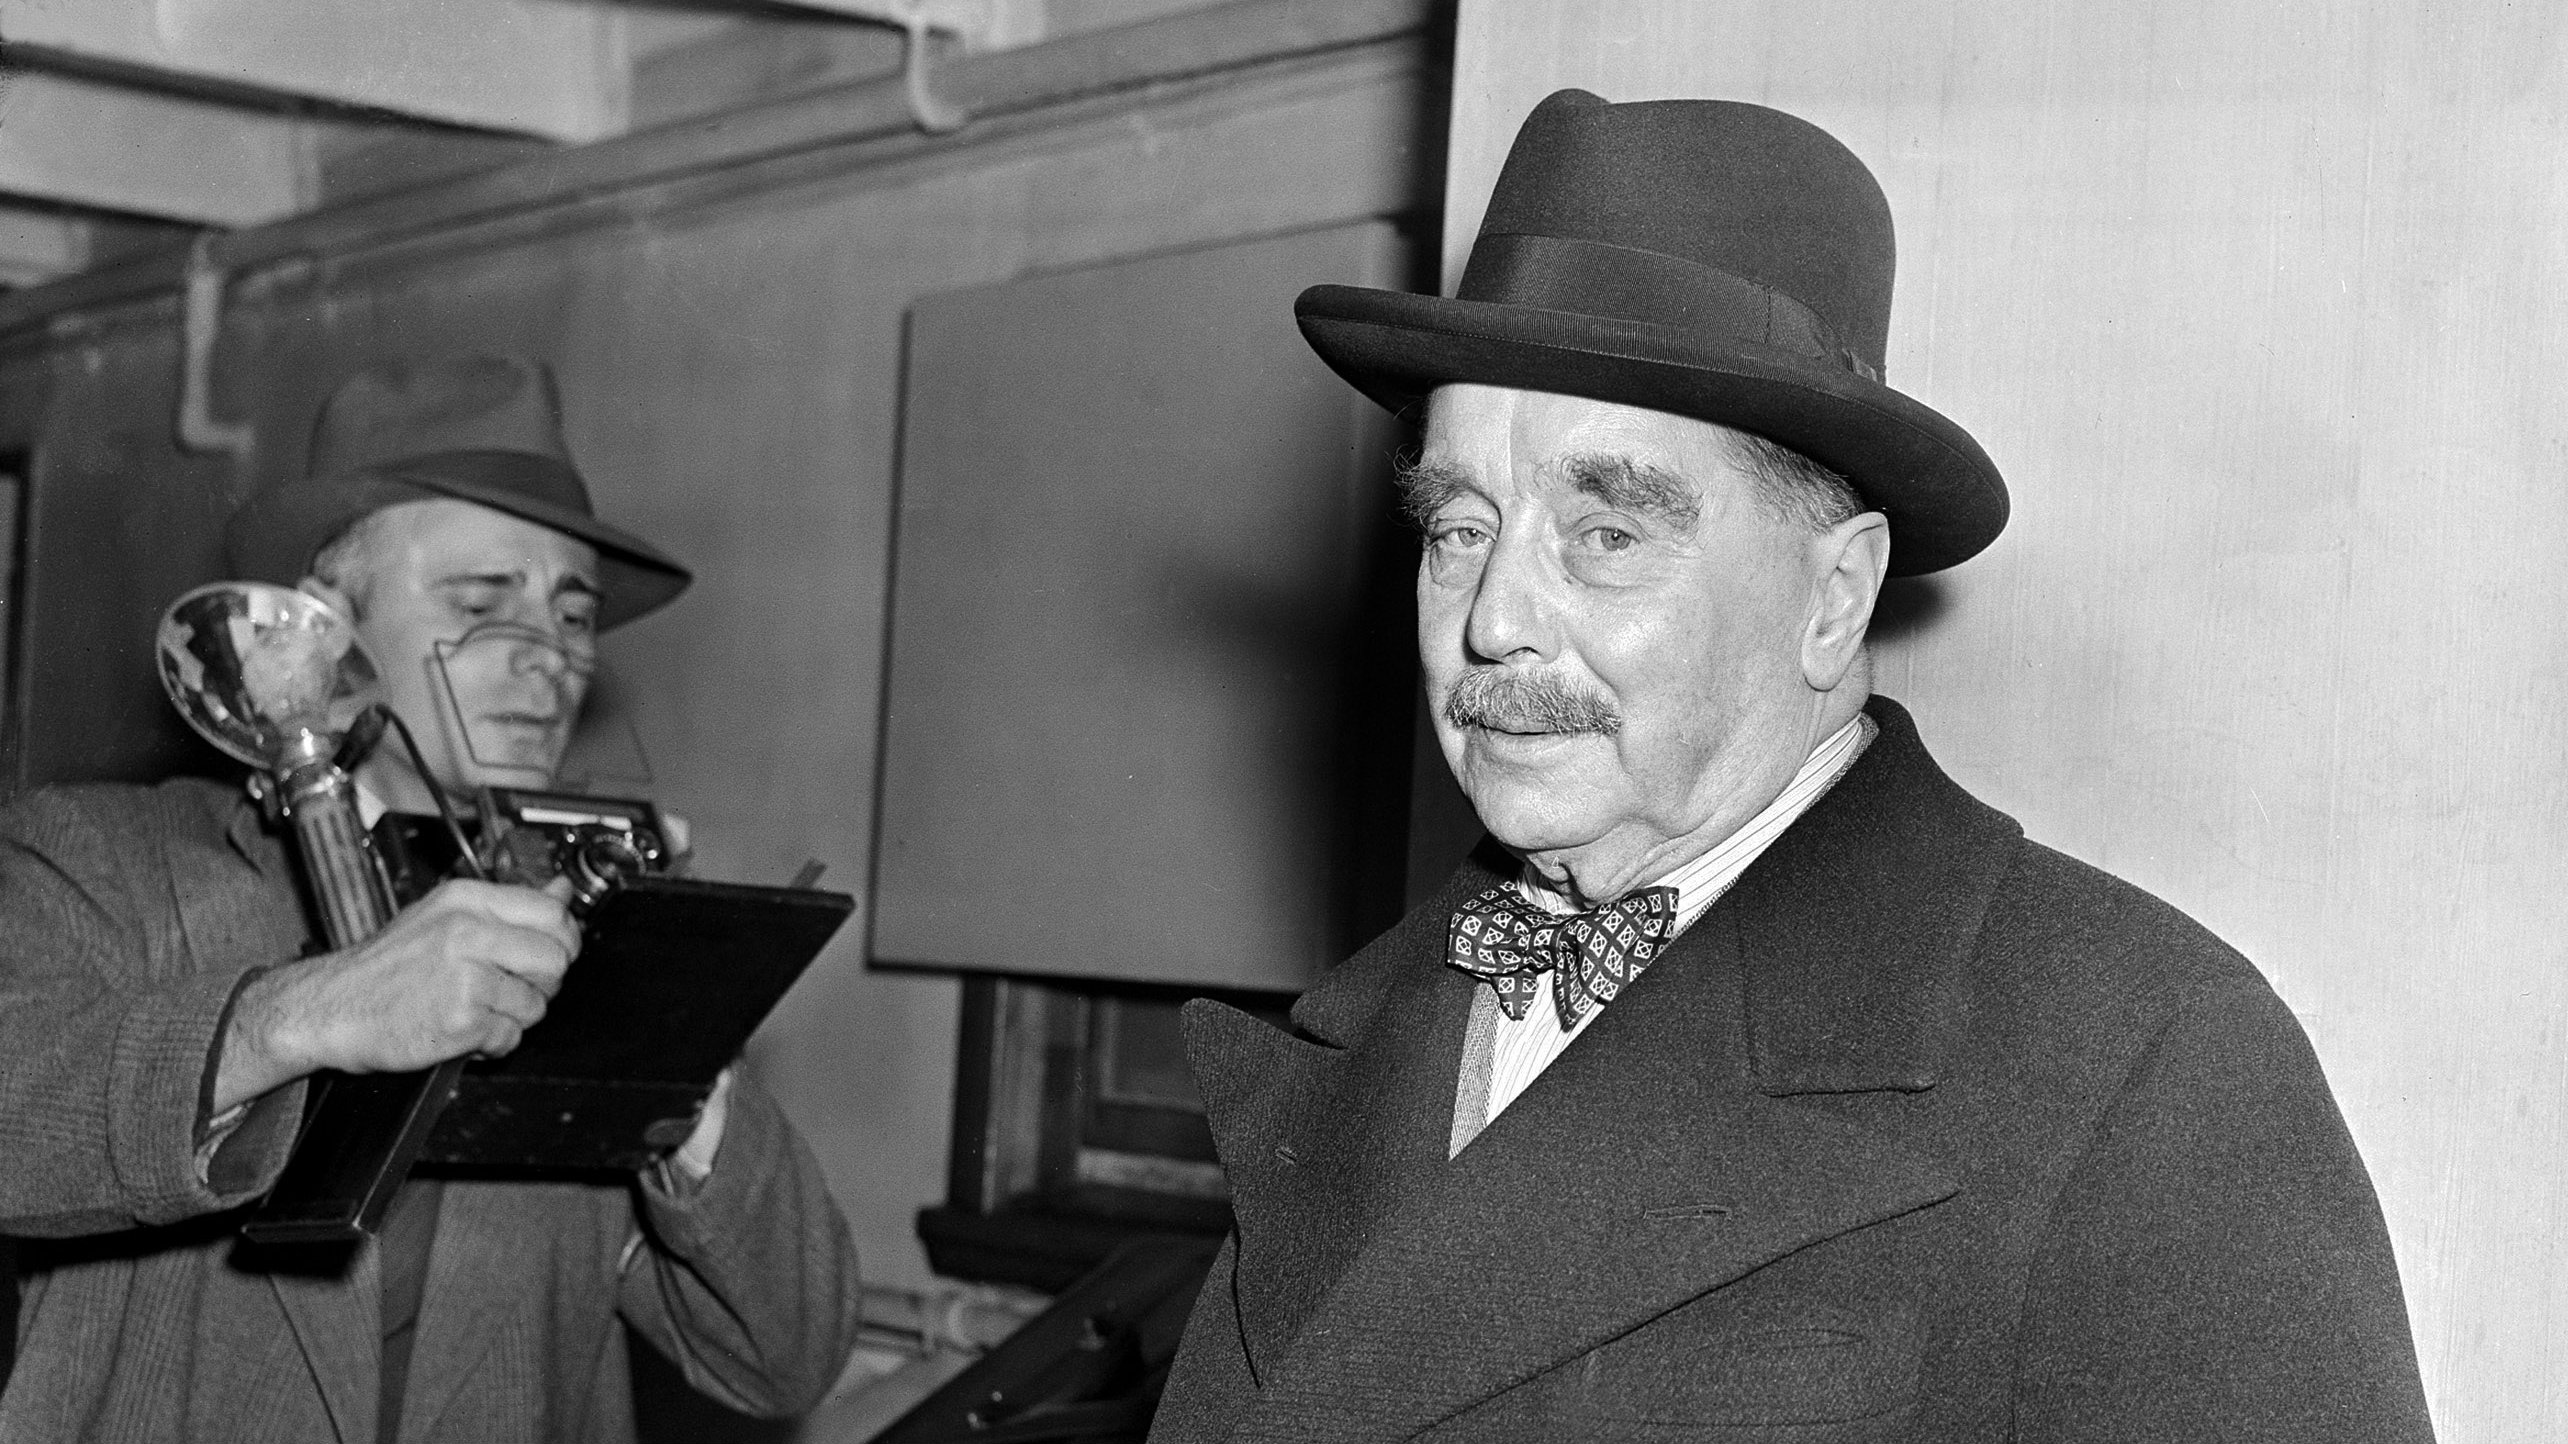 HG Wells correctly predicted the internet, space travel, and many